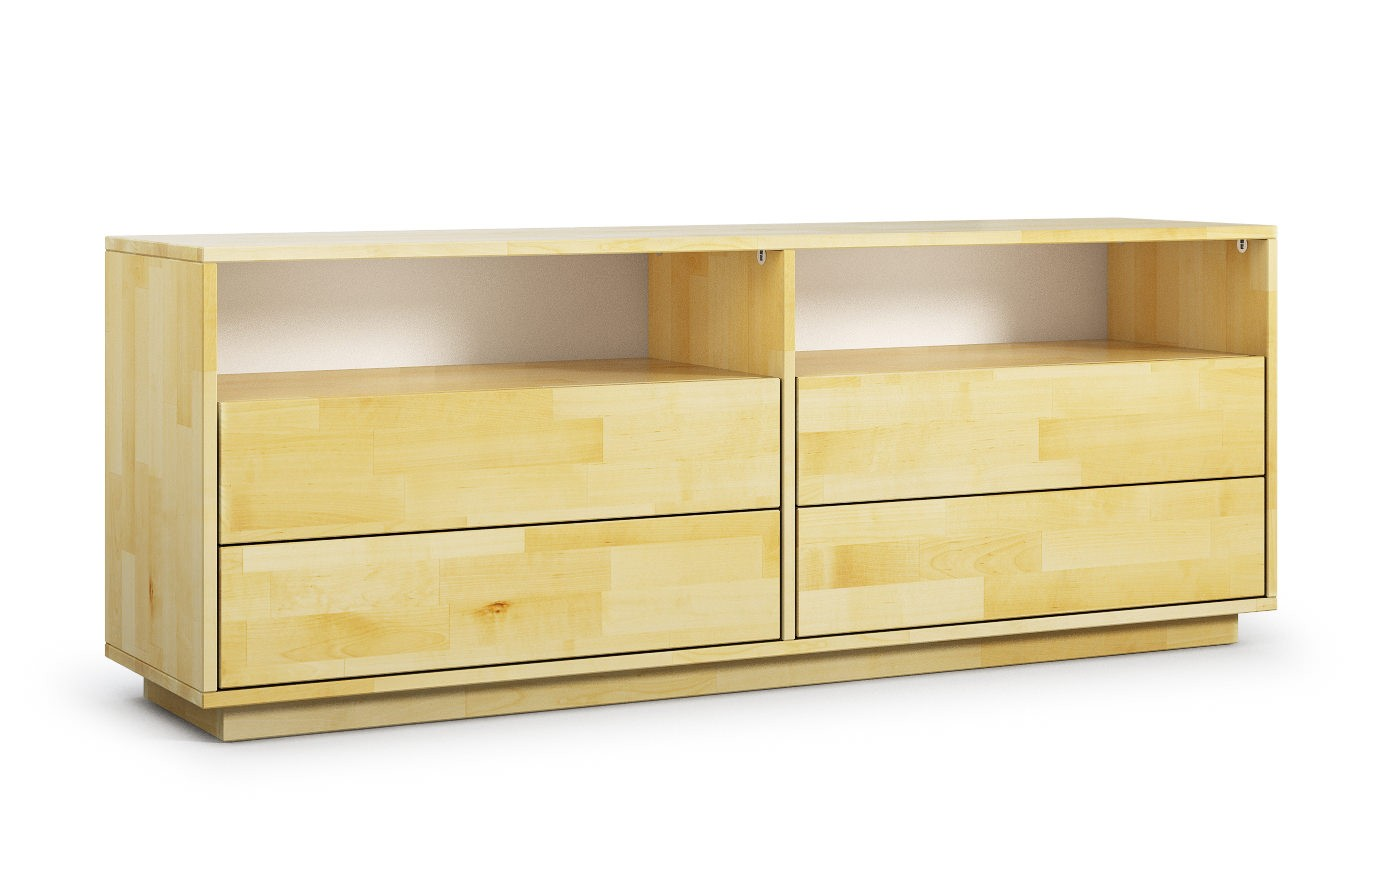 larisa in birke hifi sideboard nach ma. Black Bedroom Furniture Sets. Home Design Ideas